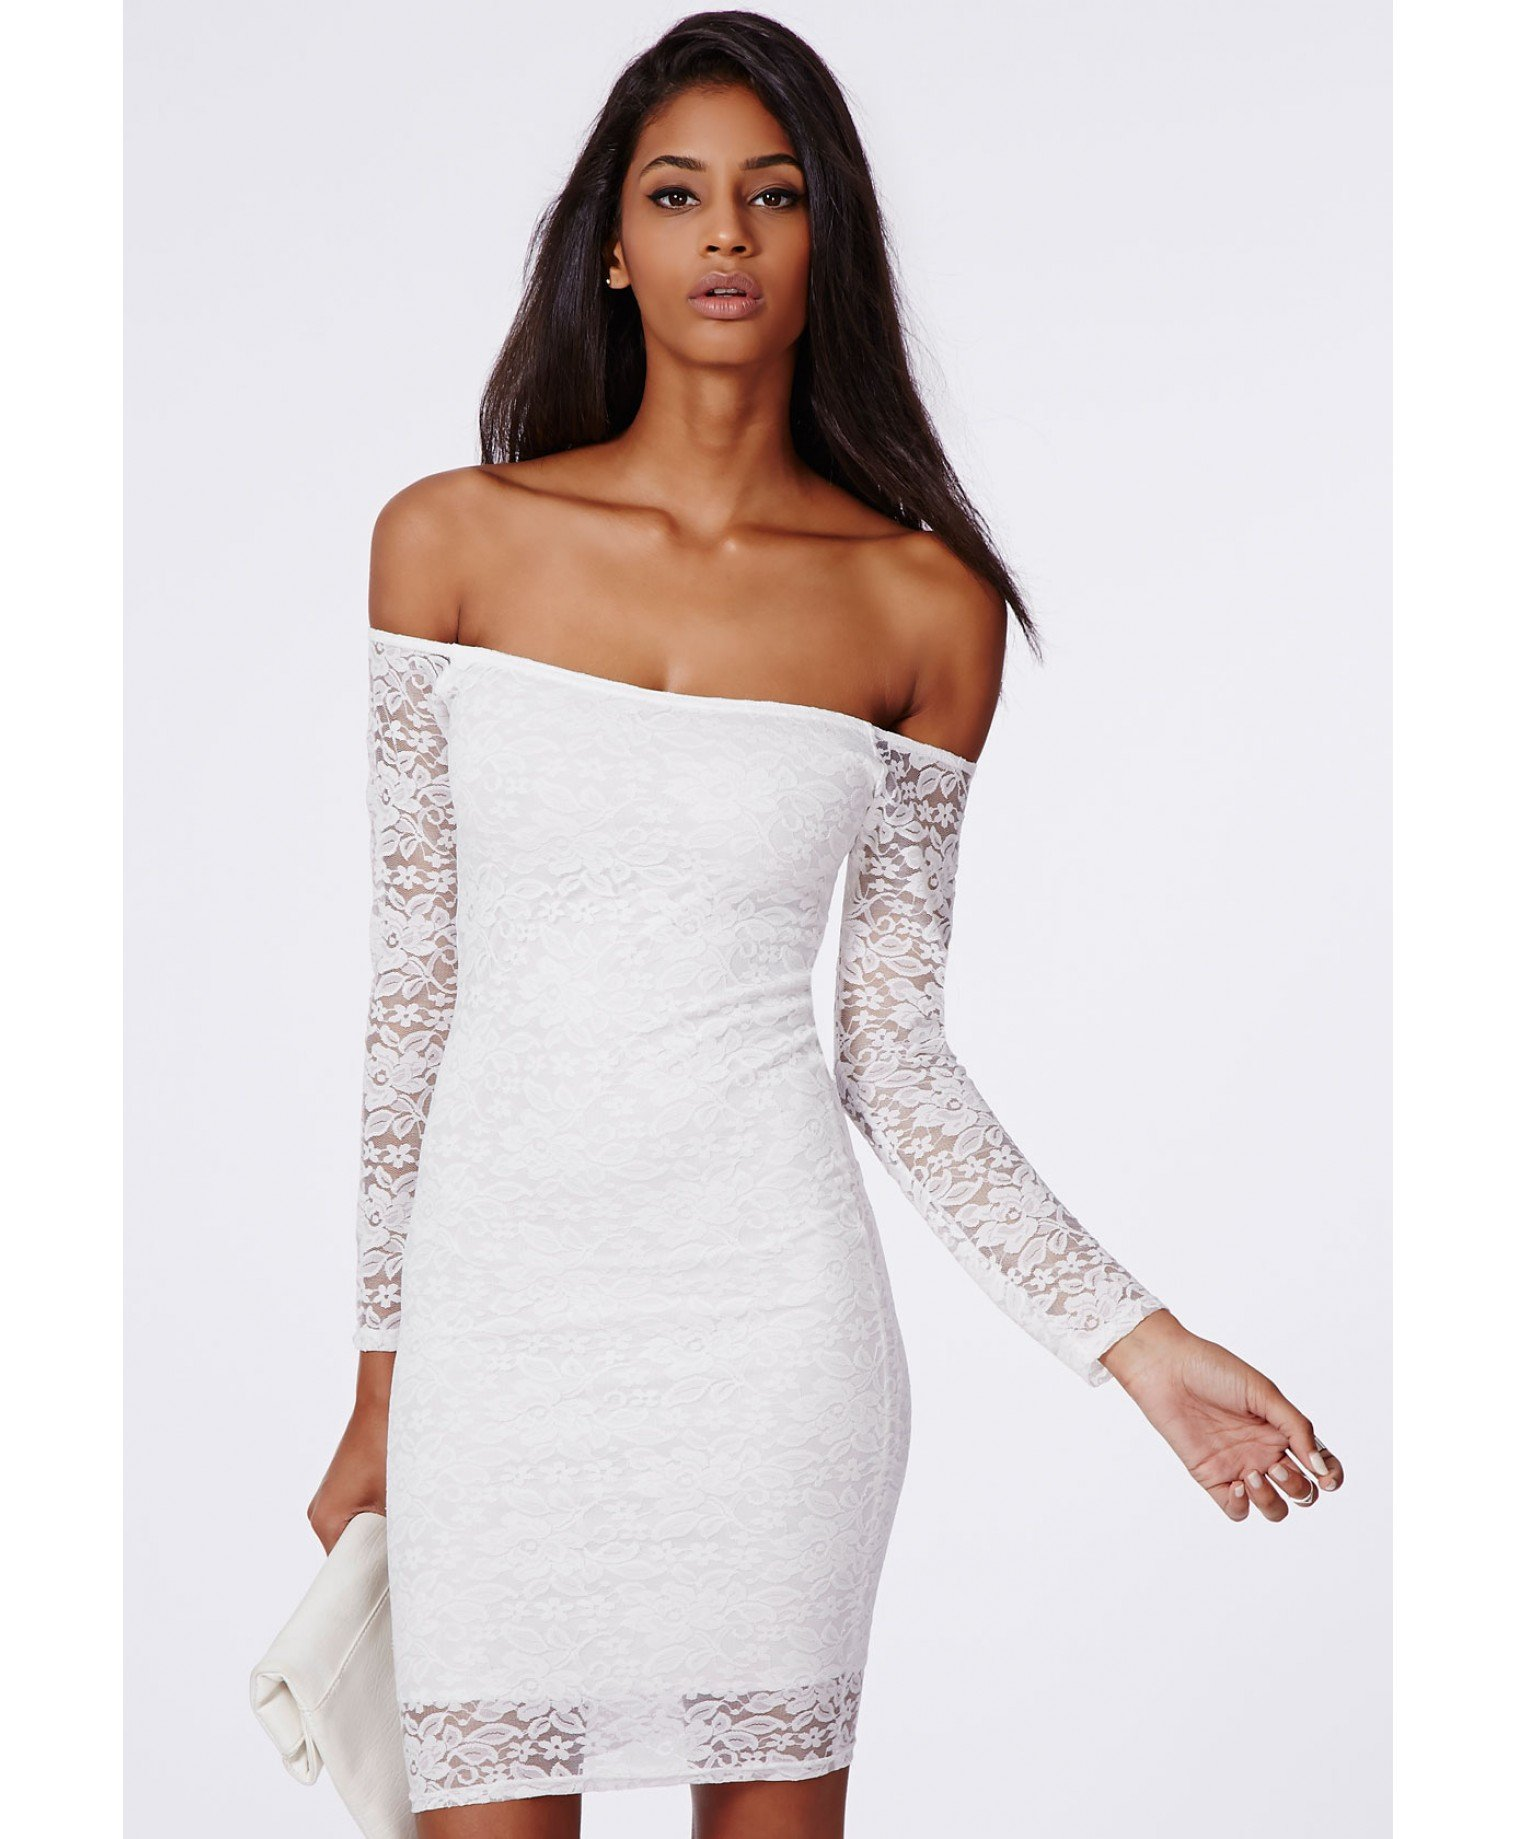 f218a1a7537e Lyst - Missguided Gracie Lace Bardot Bodycon Dress White in White